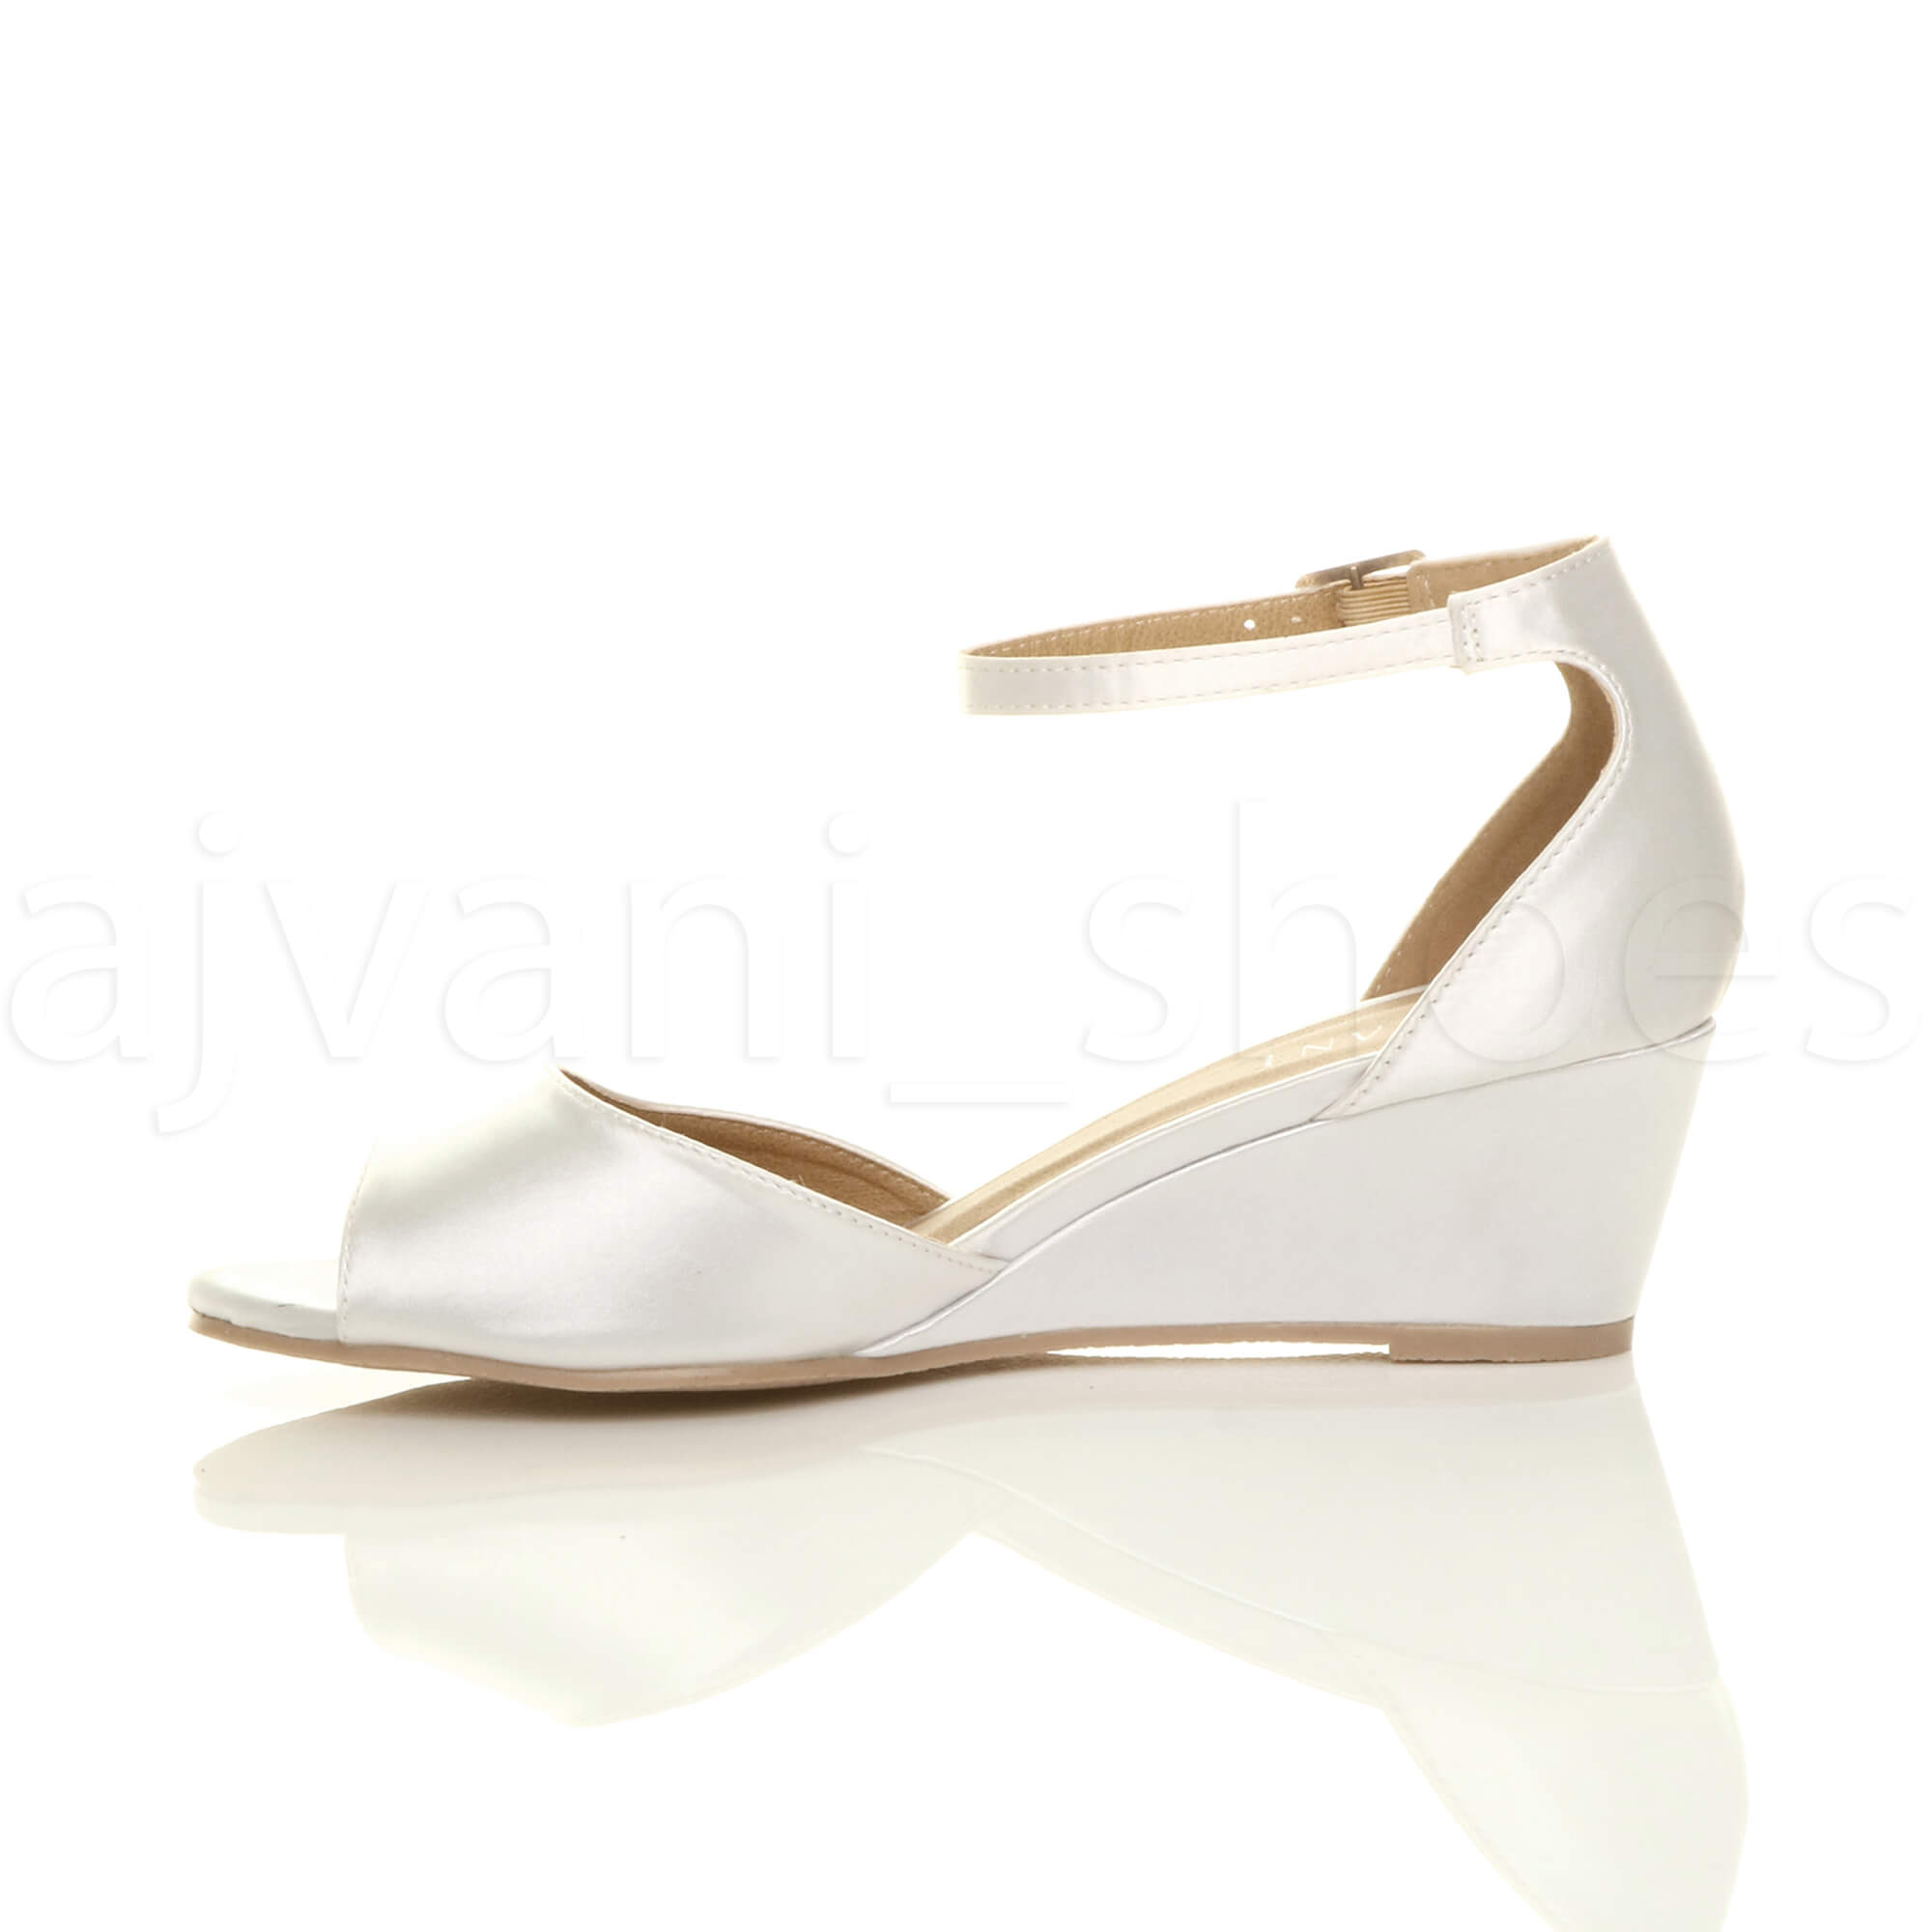 WOMENS-LADIES-LOW-MID-WEDGE-HEEL-ANKLE-STRAP-SMART-CASUAL-EVENING-SANDALS-SIZE thumbnail 172